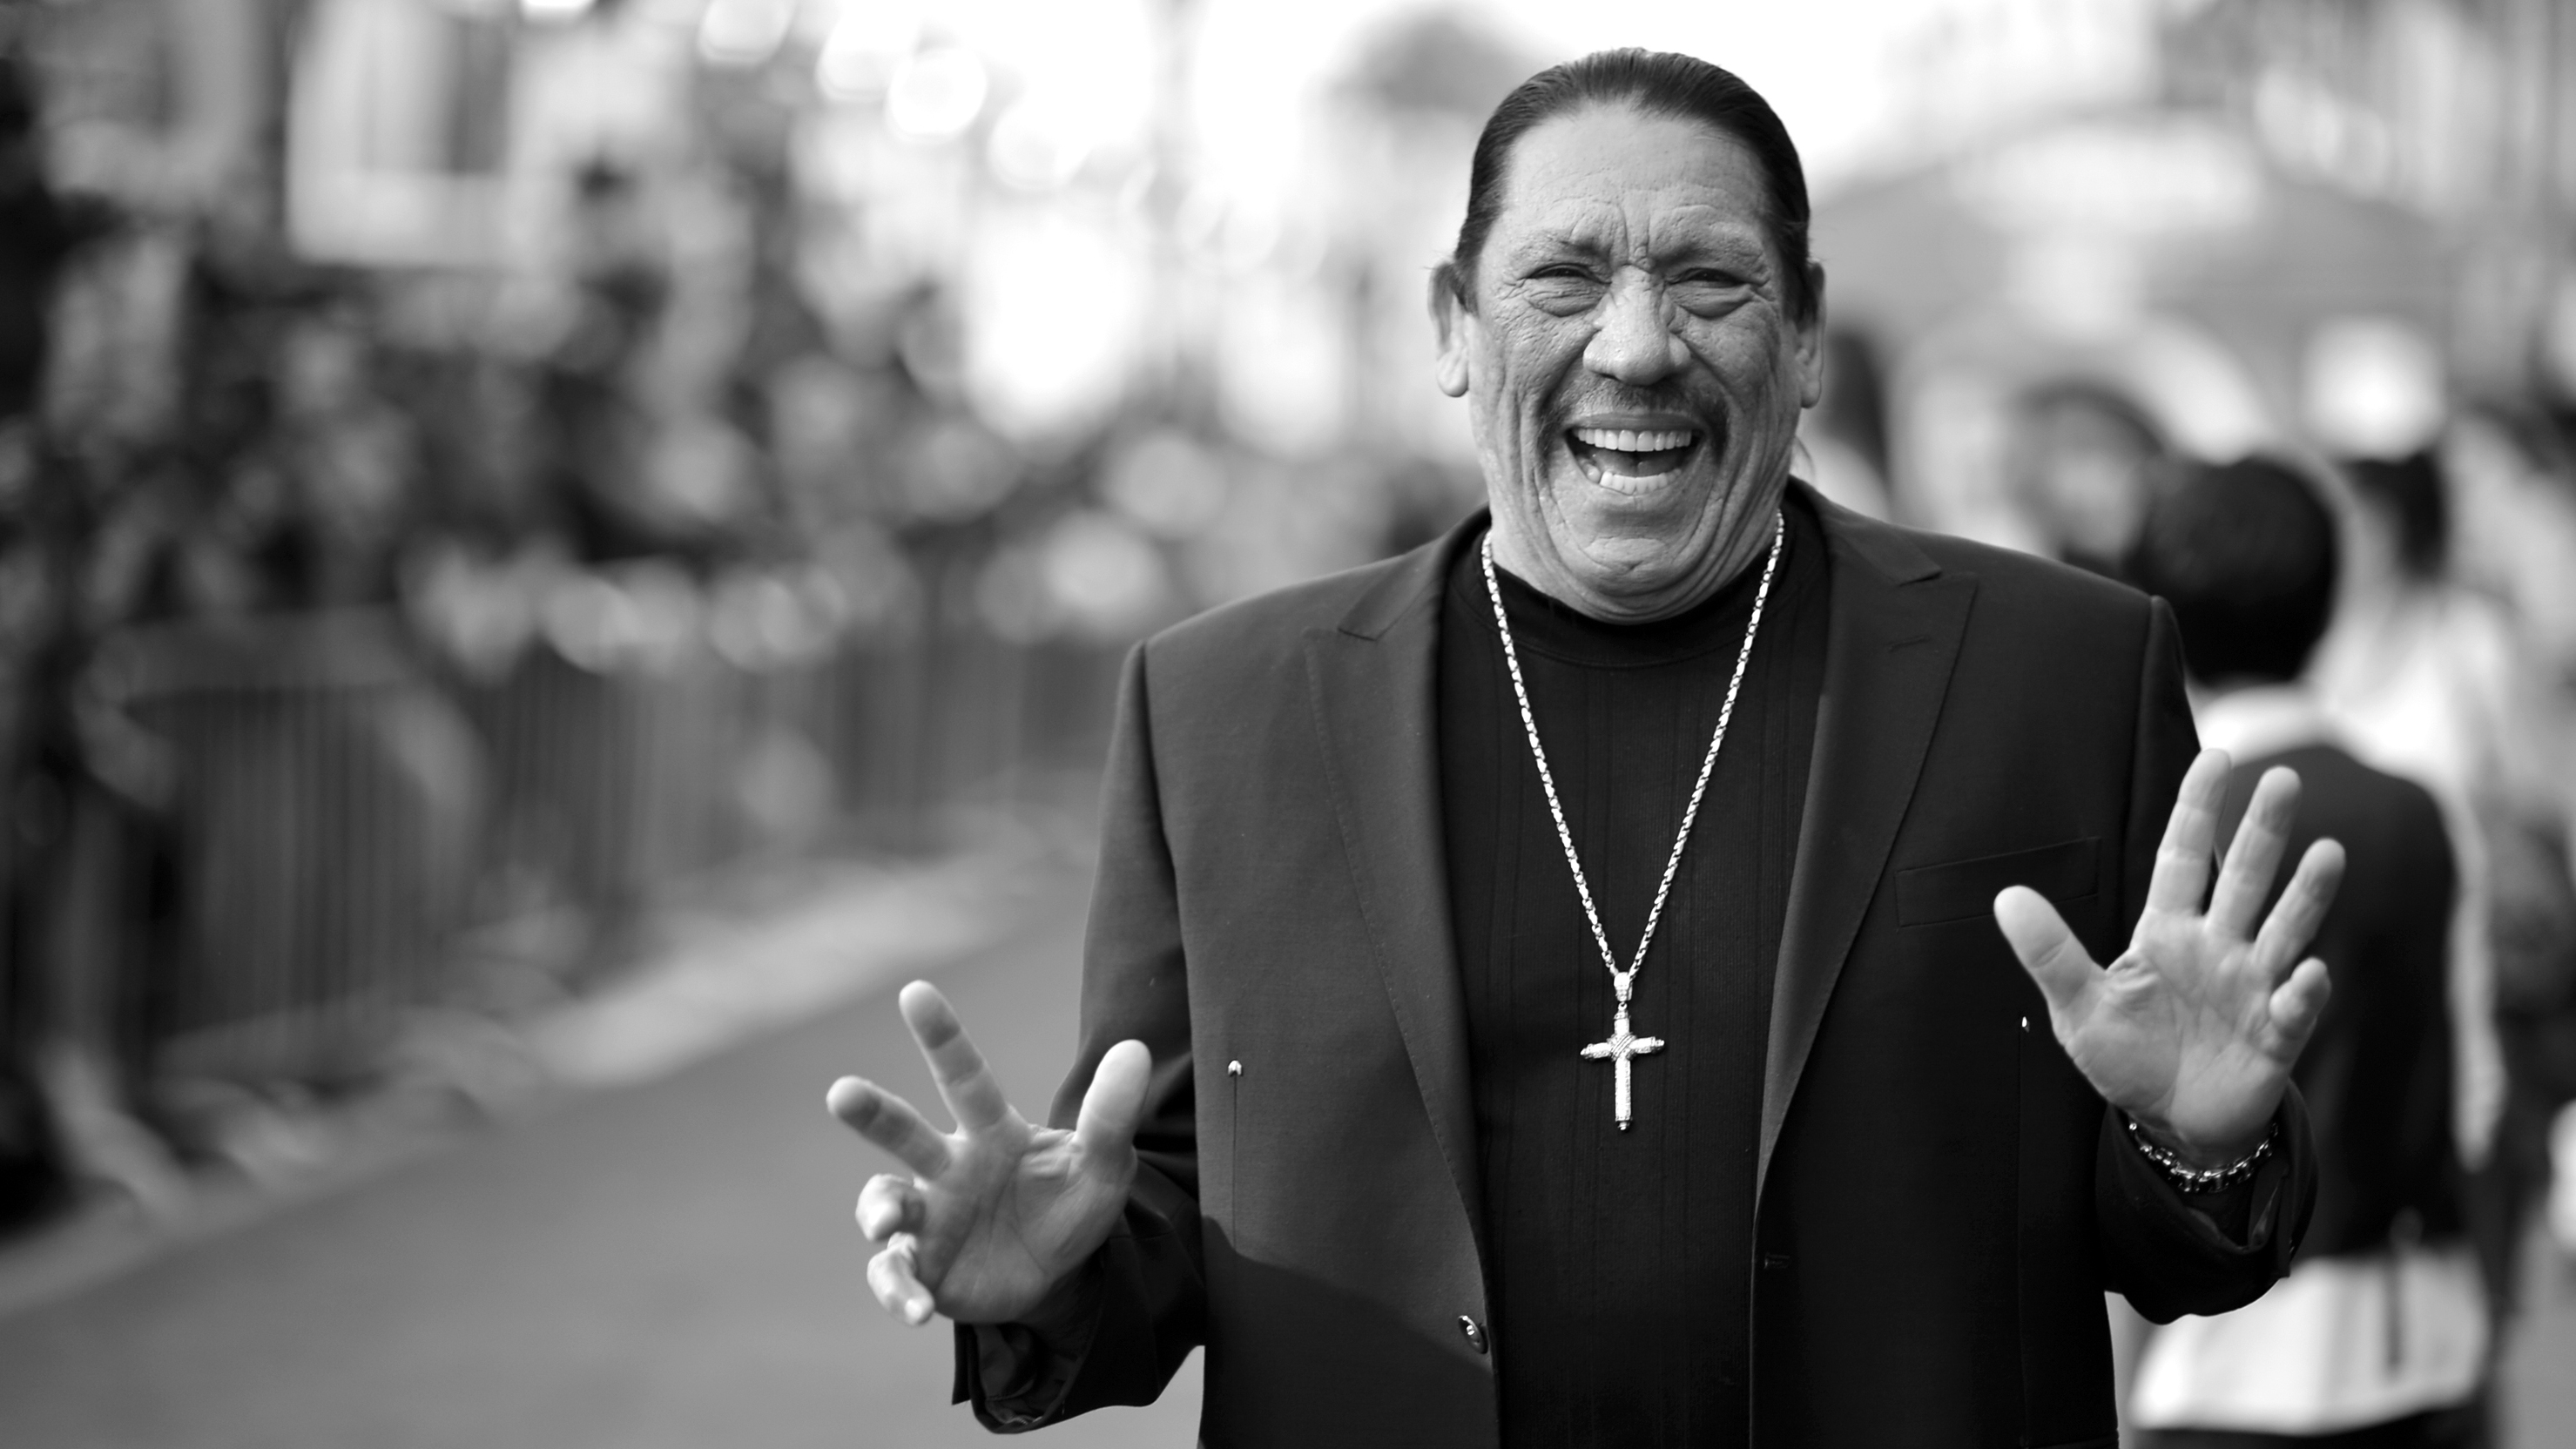 Danny Trejo On Acting, Addiction And Playing 'The Mean Chicano Dude'